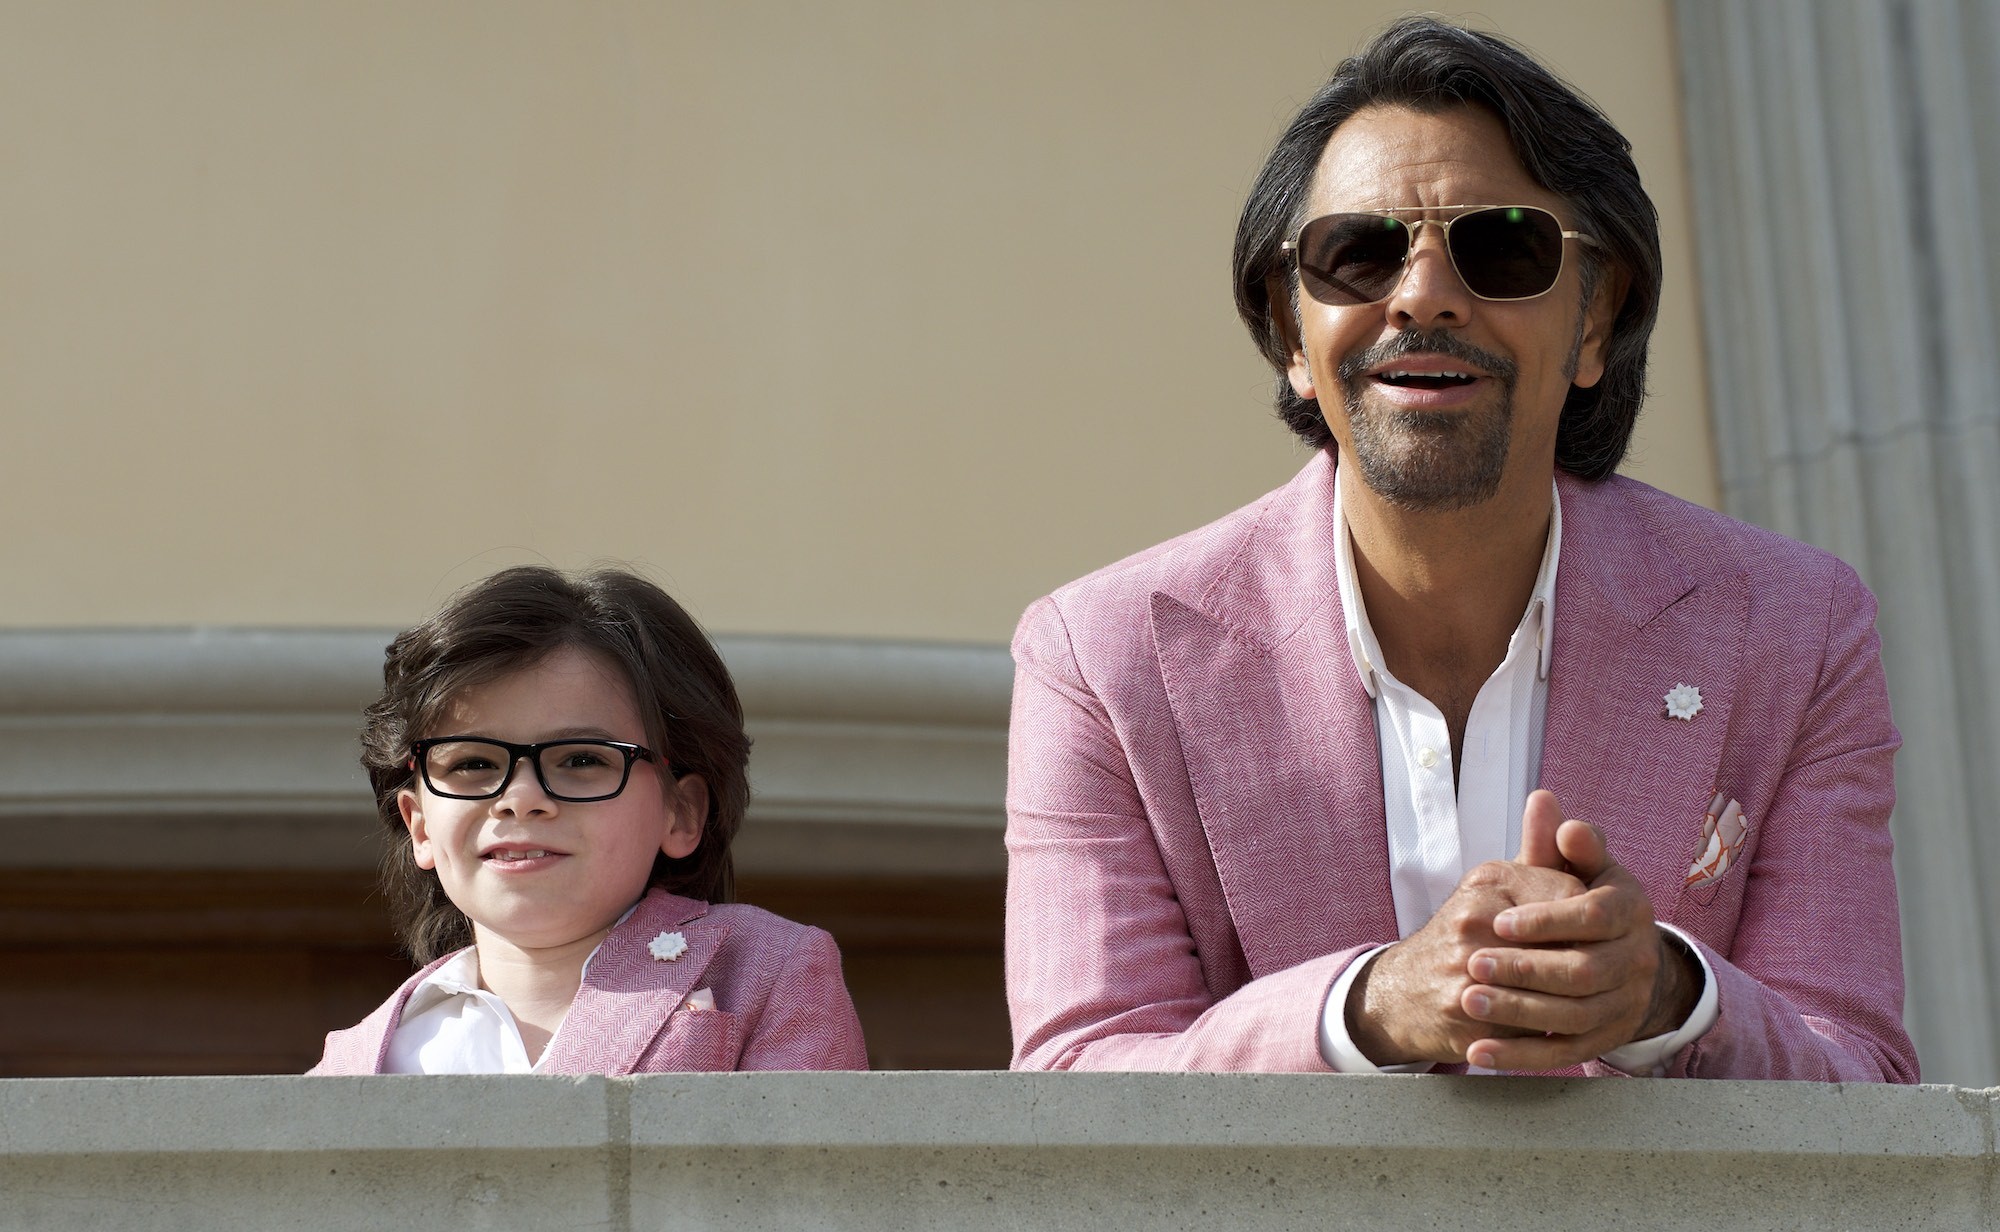 Eugenio Derbez's 'How to Be a Latin Lover' Was the No. 2 Movie in the US this Past Weekend